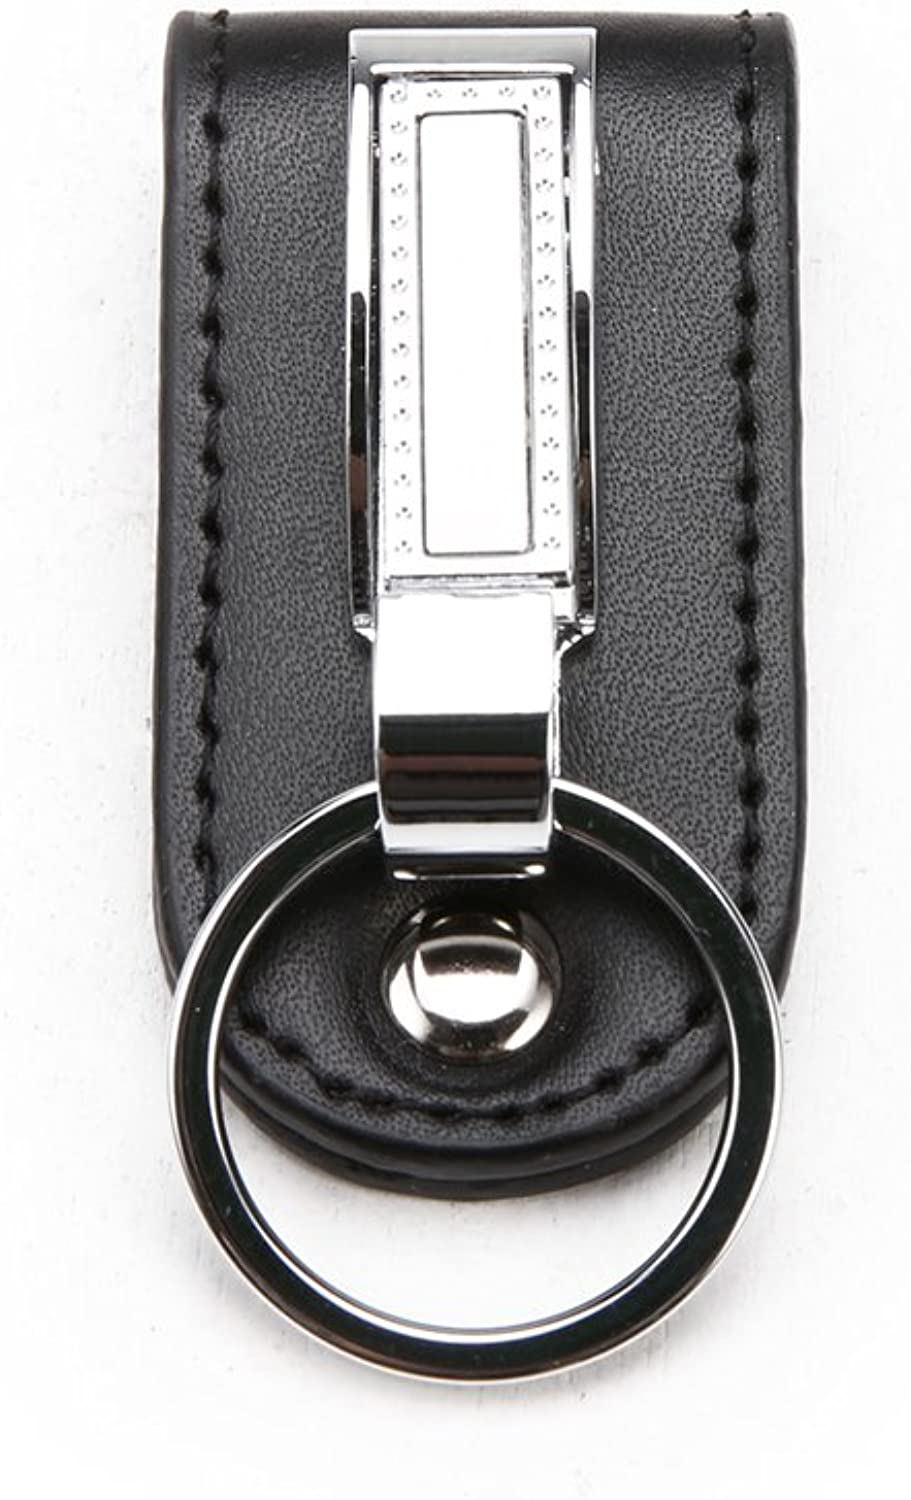 Olywell Belt Loop Key Chain, Faux Leather Belt Key Holder for Your Keys Outdoor EDC Tools